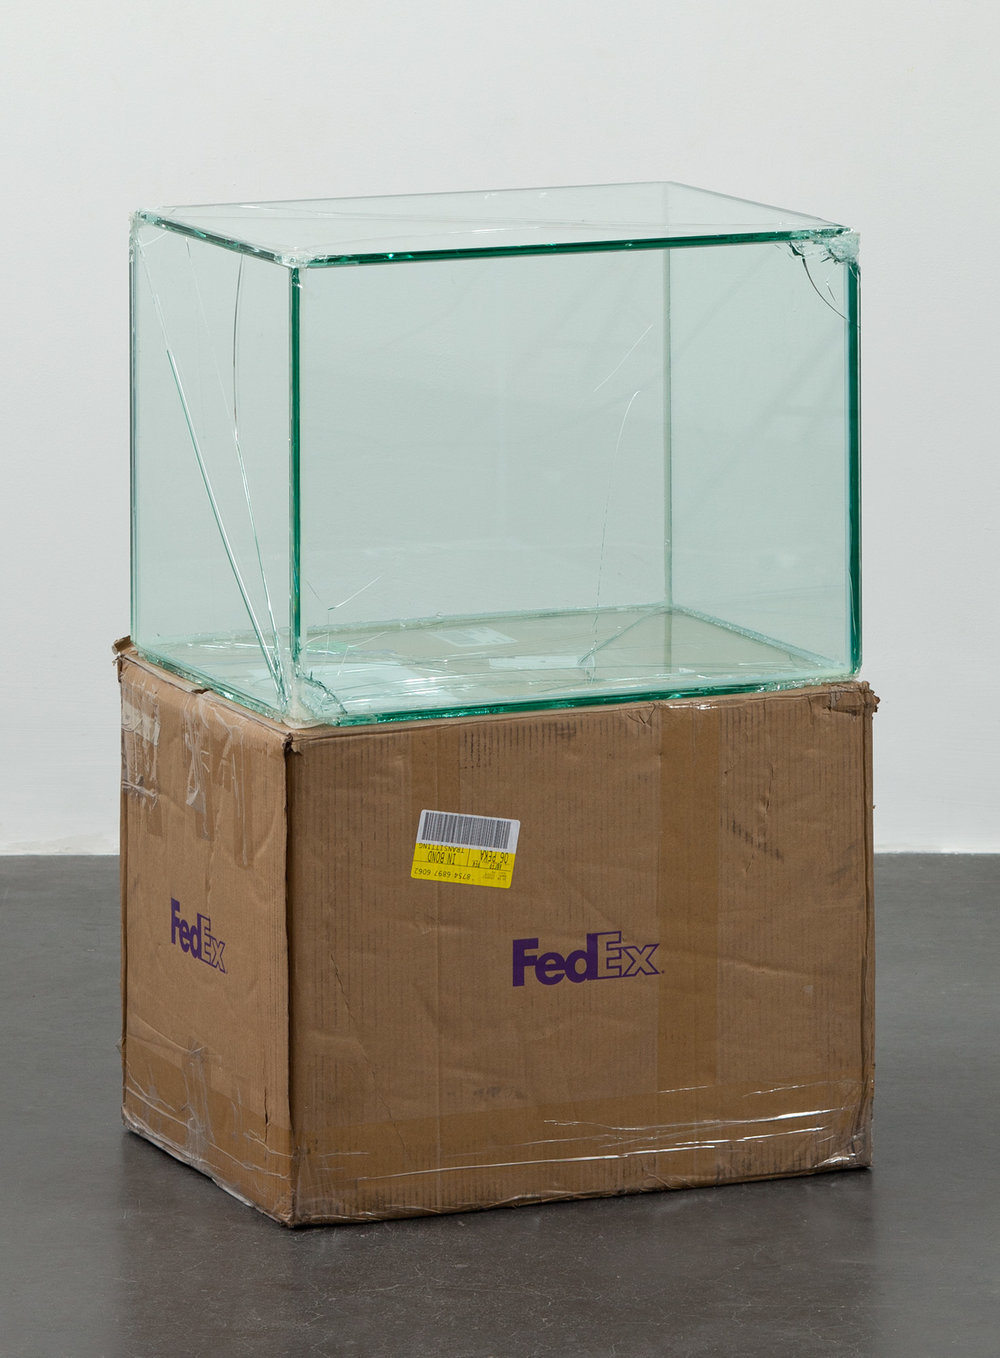 FedEx® Large Kraft Box  © 2004 FEDEX 155143 REV 10/04 SSCC, International Priority, Los Angeles-Beijing trk#875468976062, September 9–14, 2011, International Priority, Bejing–London trk#874594463978, March 13–15, 2012    2011–   Laminated glass, FedEx shipping box, accrued FedEx shipping and tracking labels, silicone, metal, tape  23 5/8 x 18 1/2 x 18 1/2 inches   Securities and Exchanges, 2011